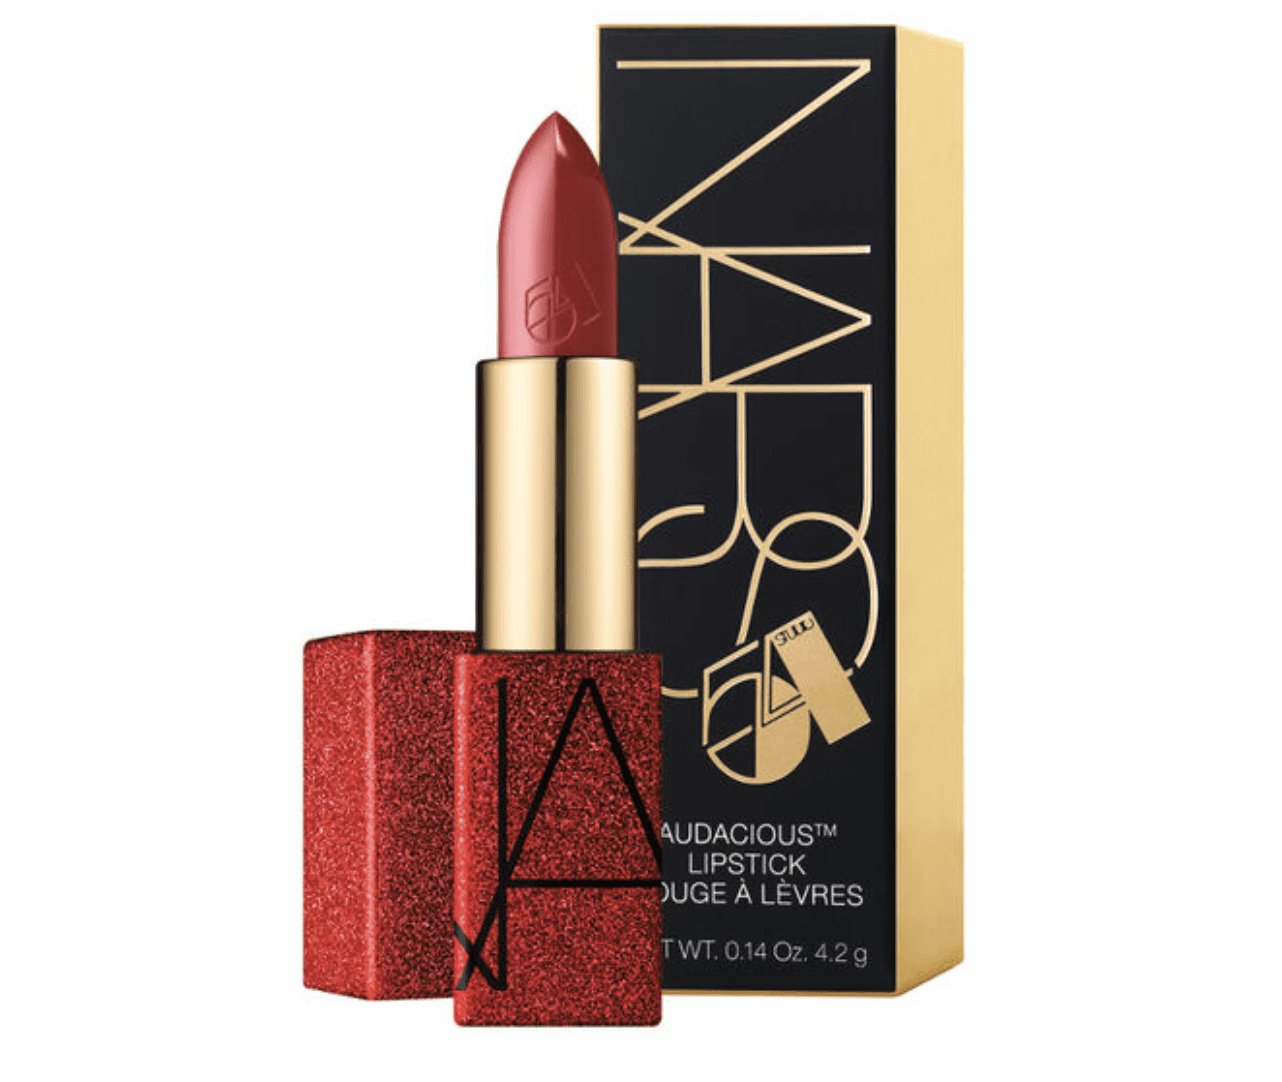 NARS: 25% off Studio 54 cosmetics products + Free gift with  p